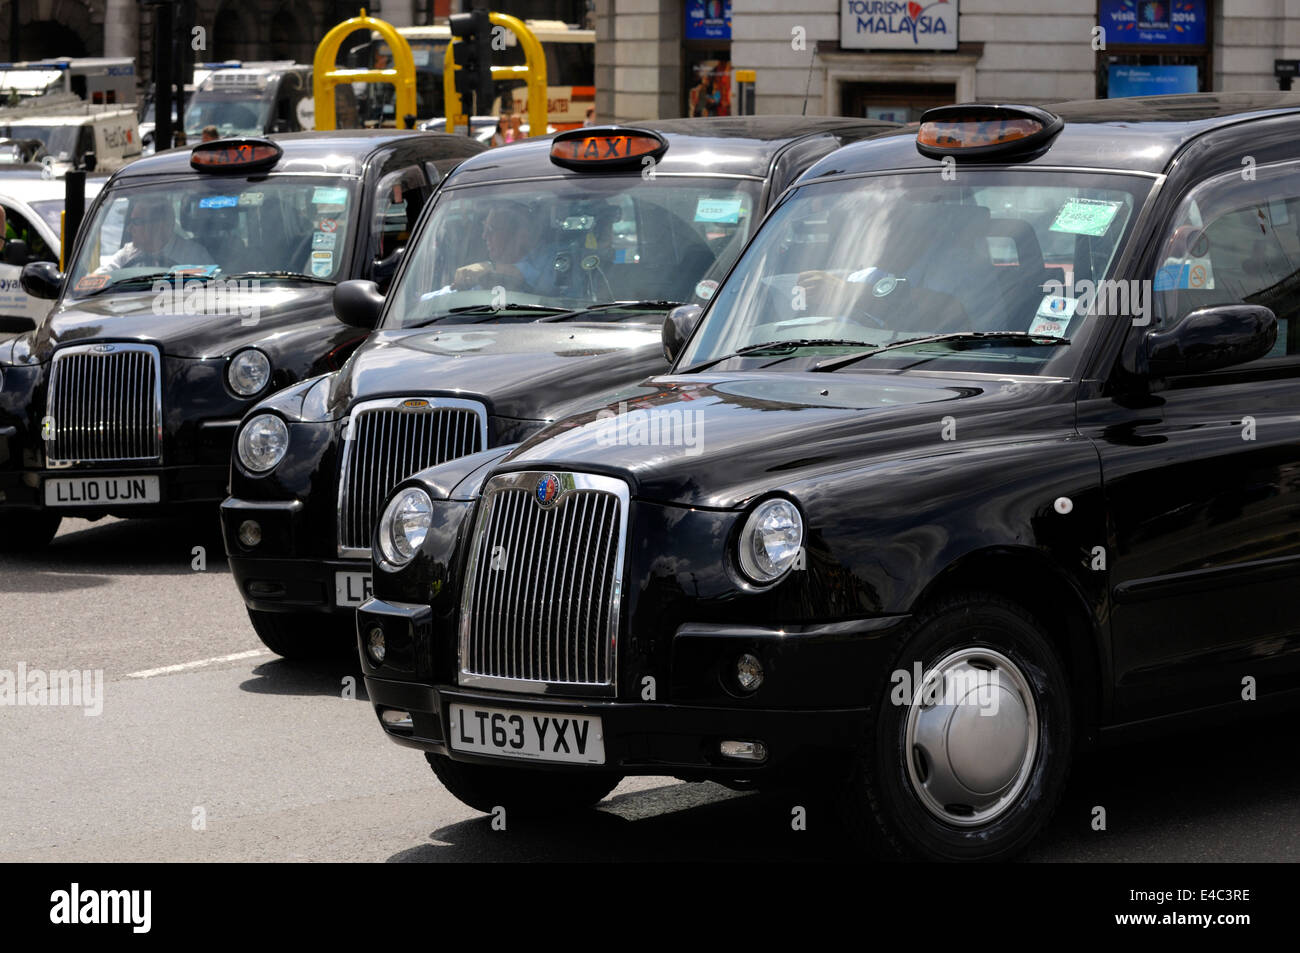 London, England, UK. Black cabs in central London - Stock Image